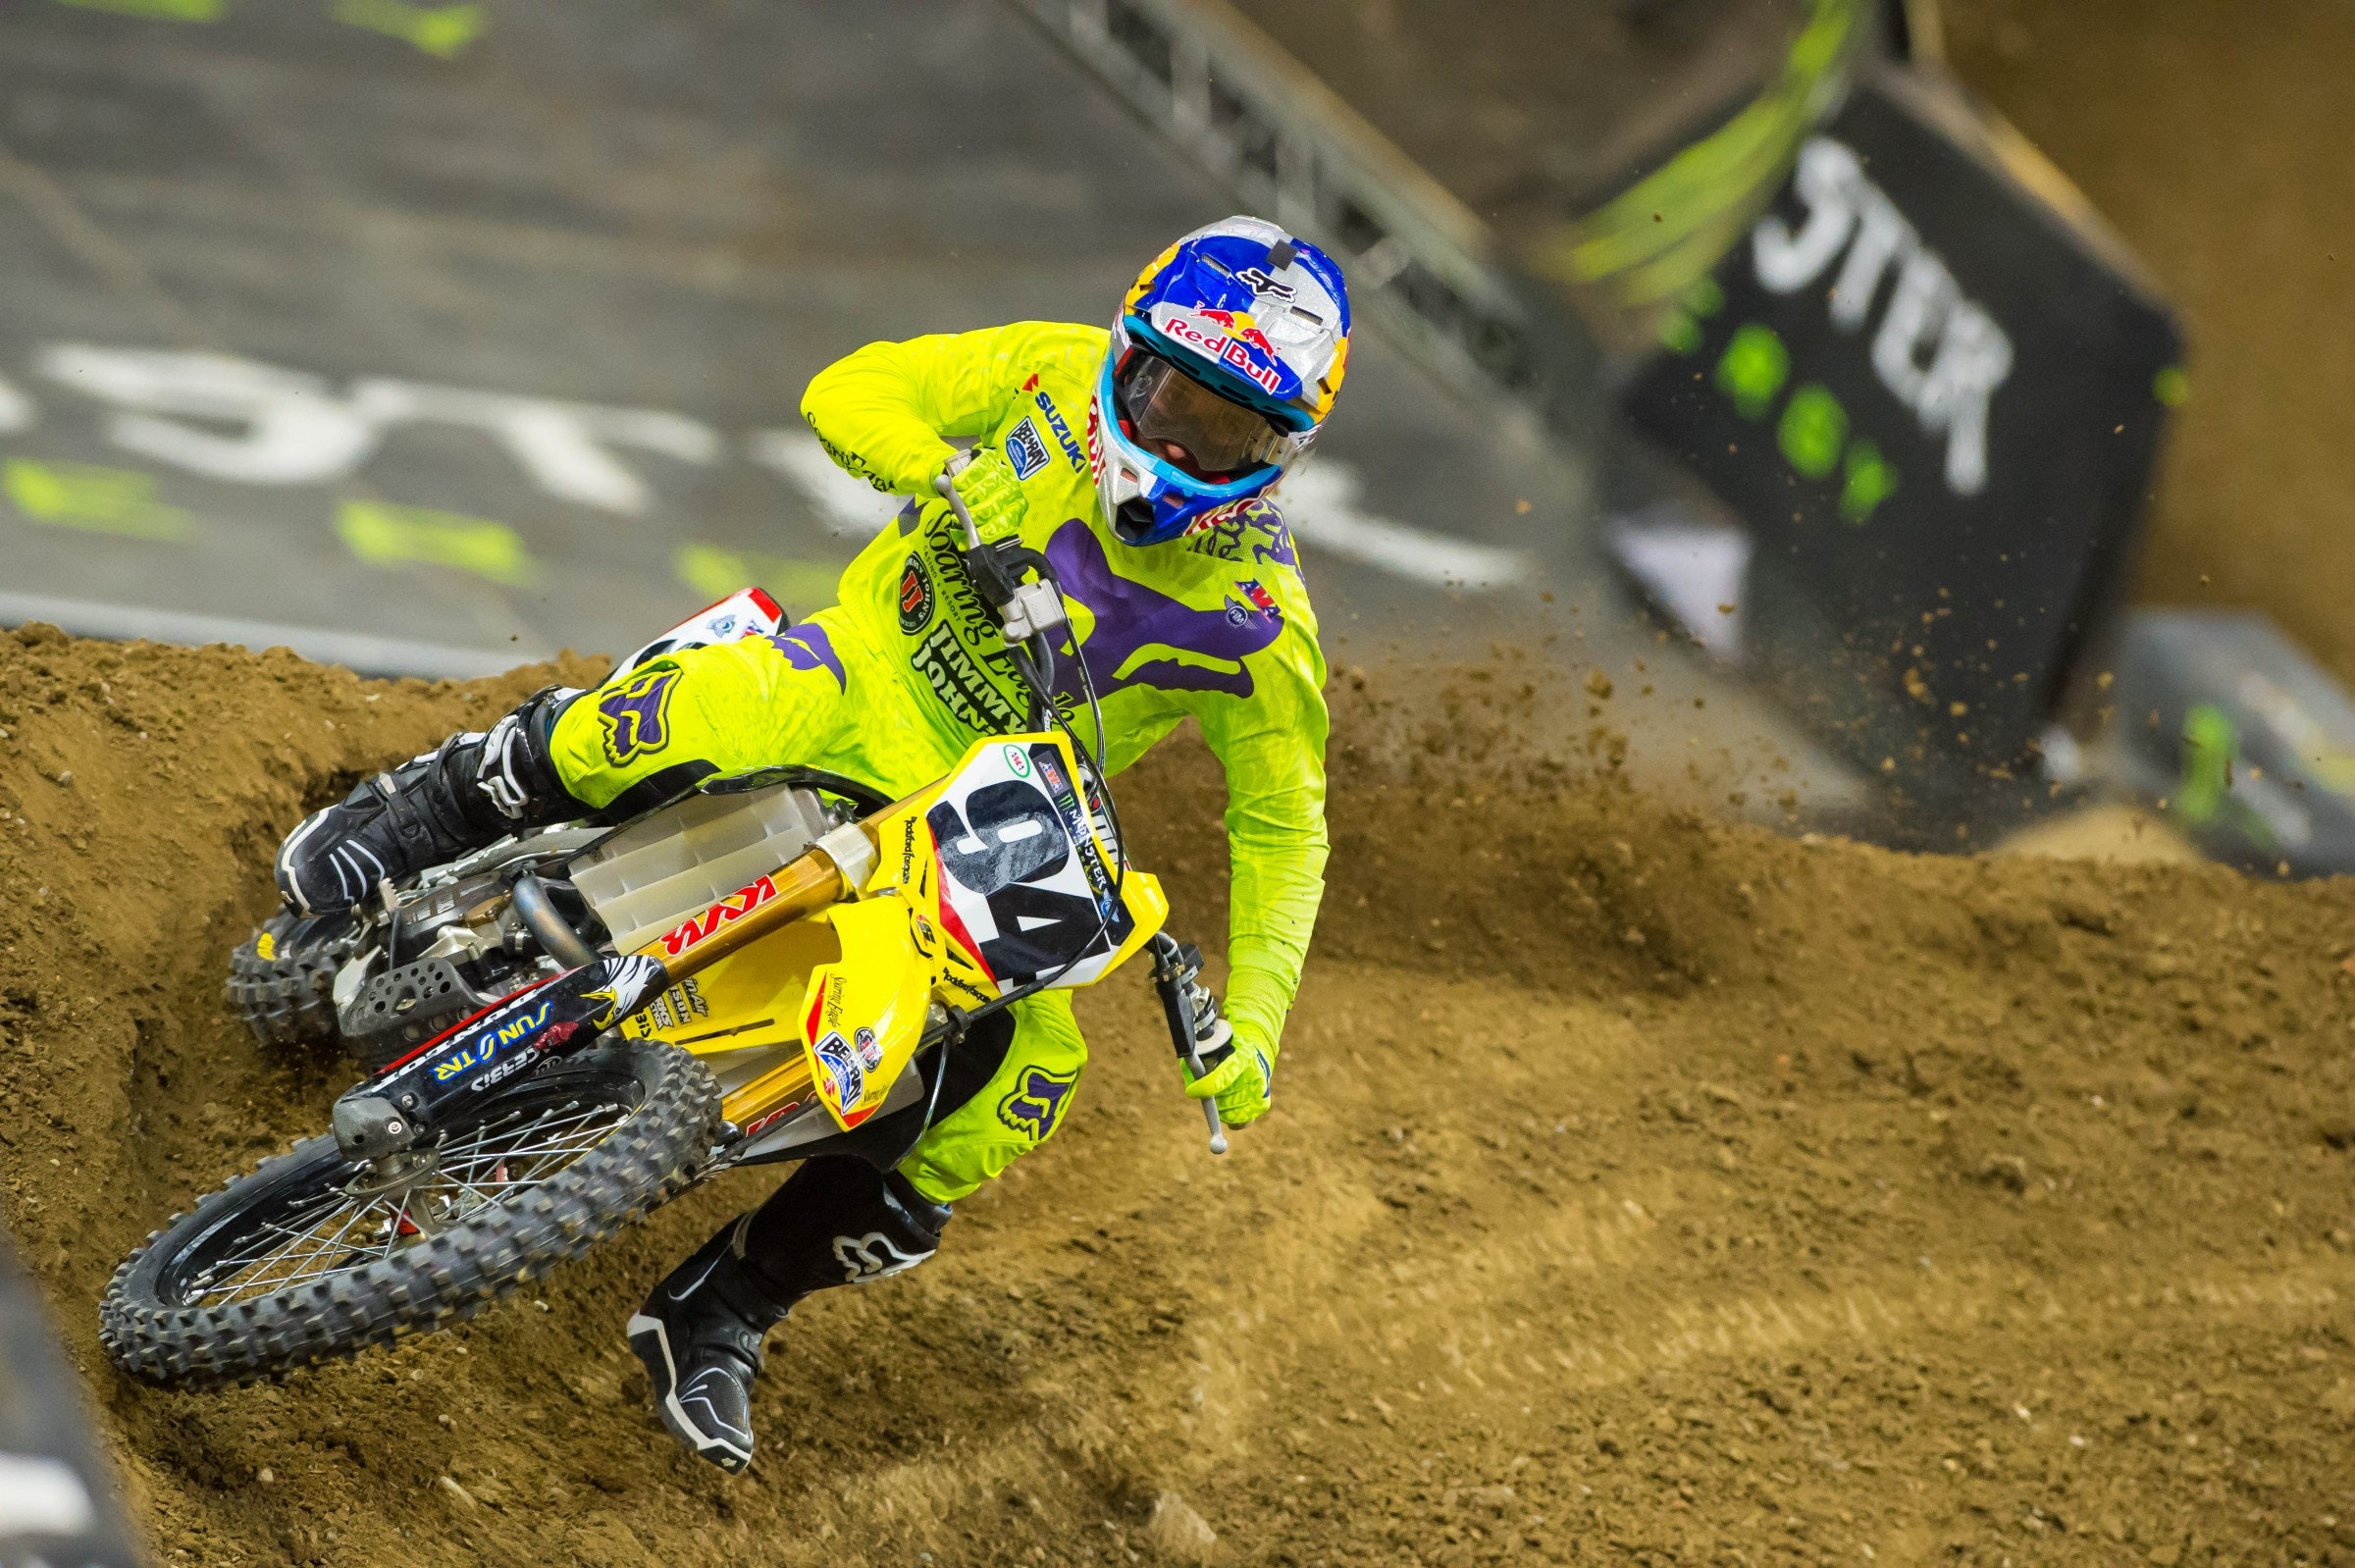 What can we expect from Roczen this weekend?